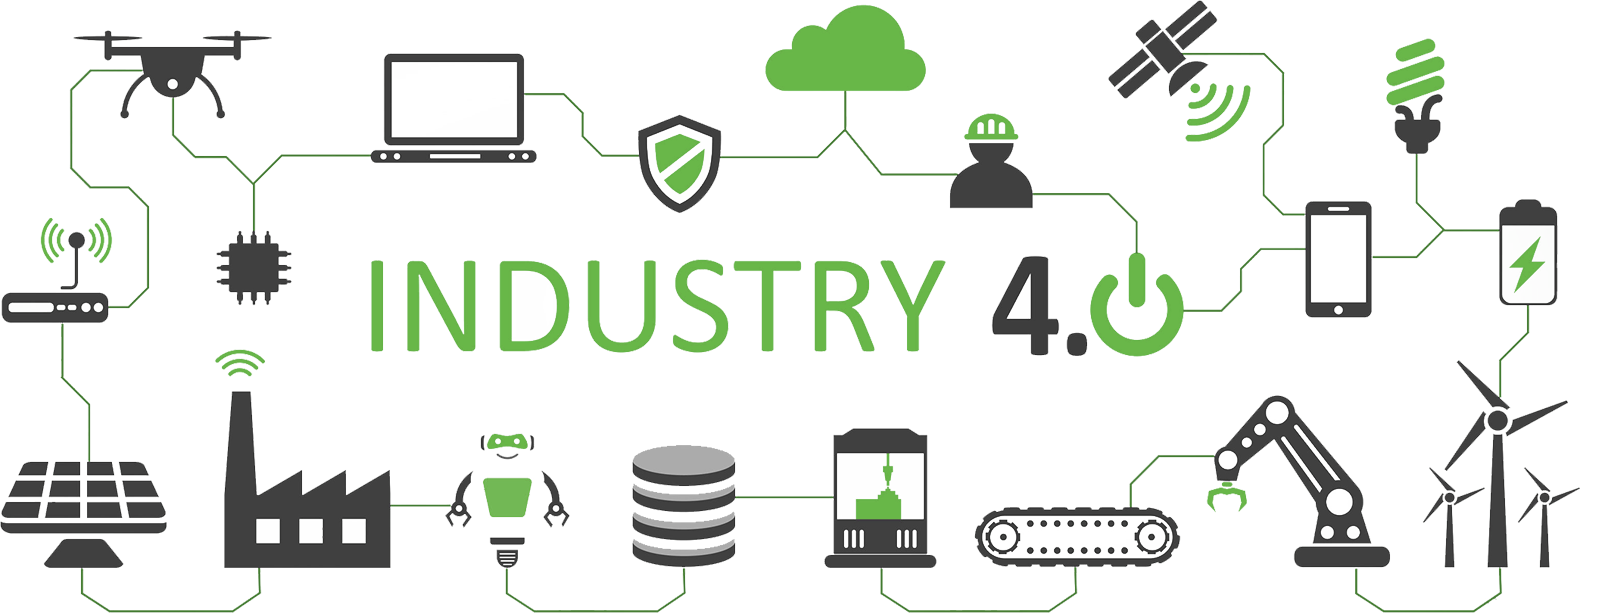 industry png2